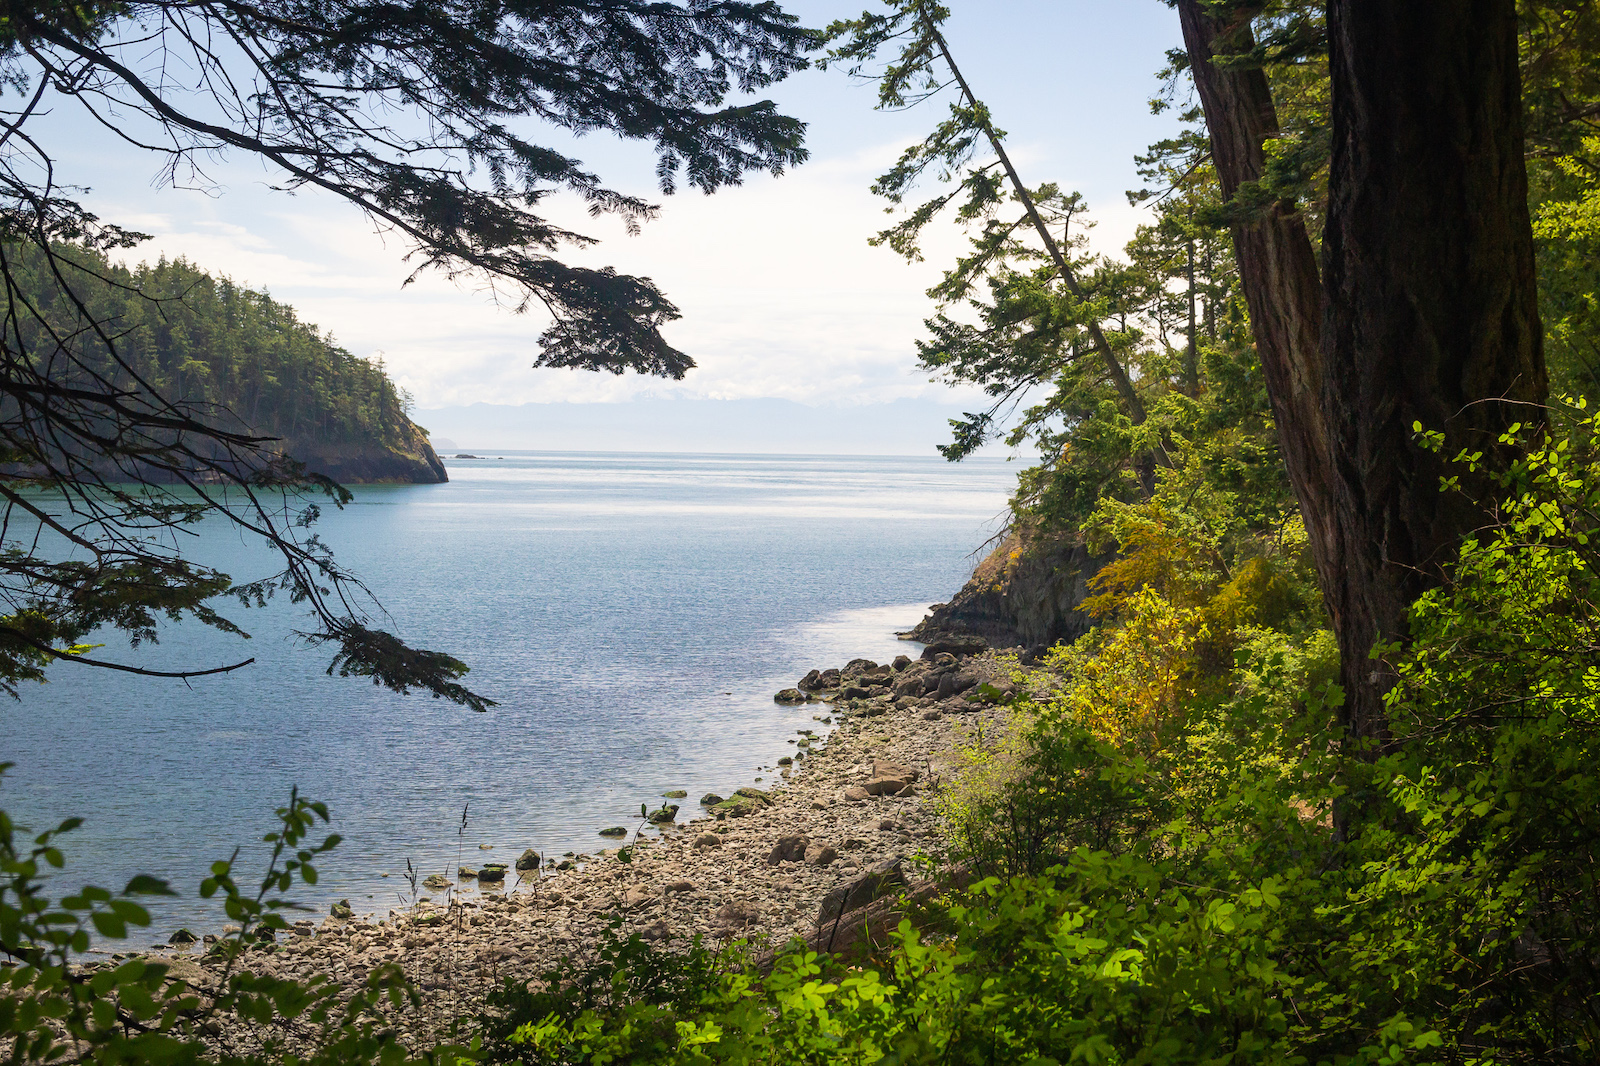 Enjoy views like these while staying at the Bowman Bay Campground.